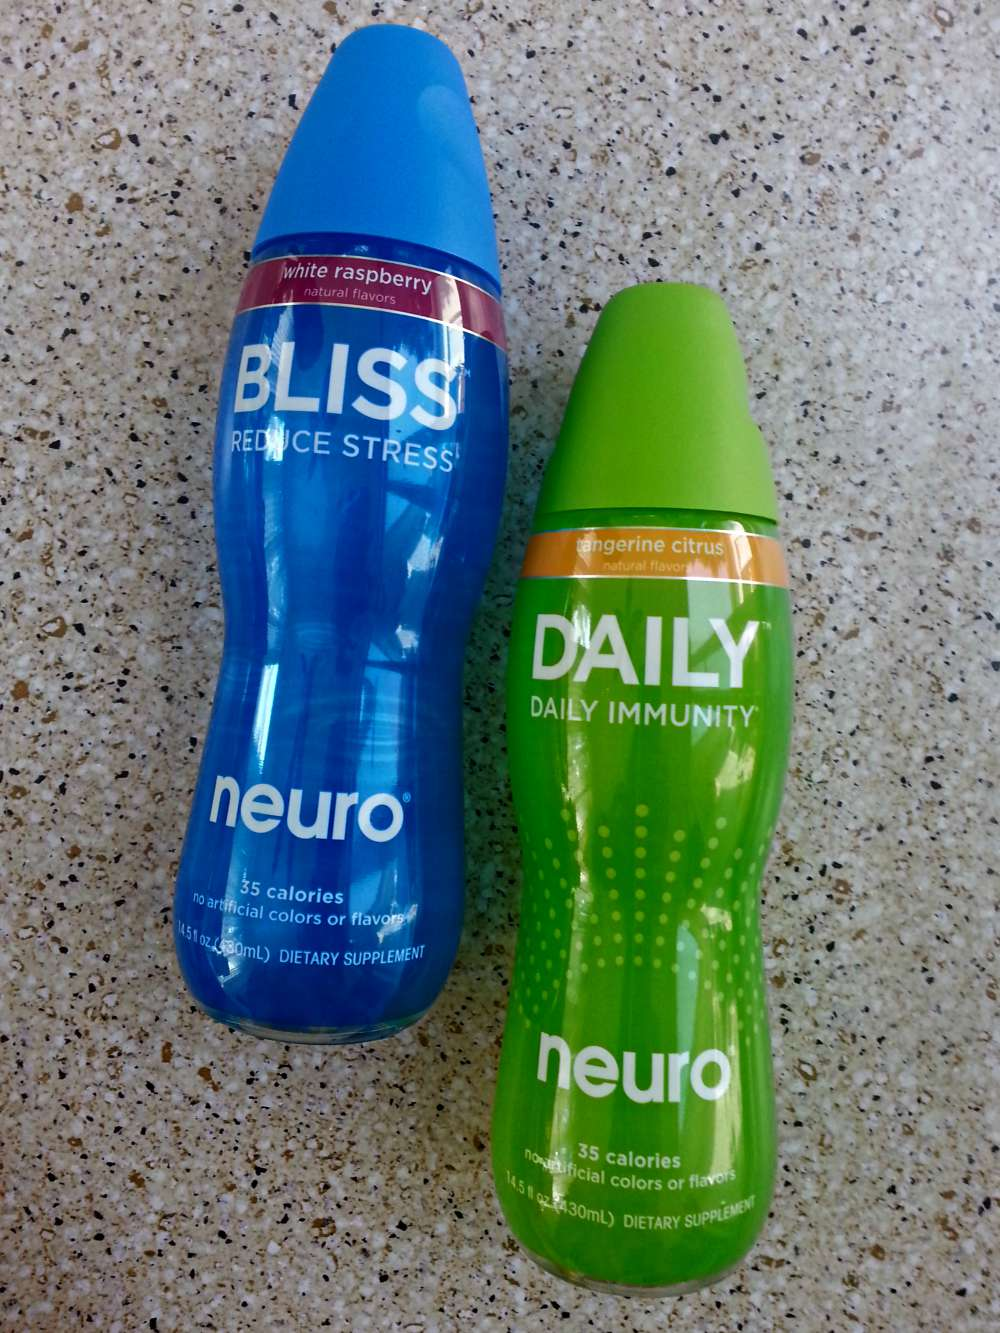 Neuro Bliss and Neuro Daily #SipandBeFit